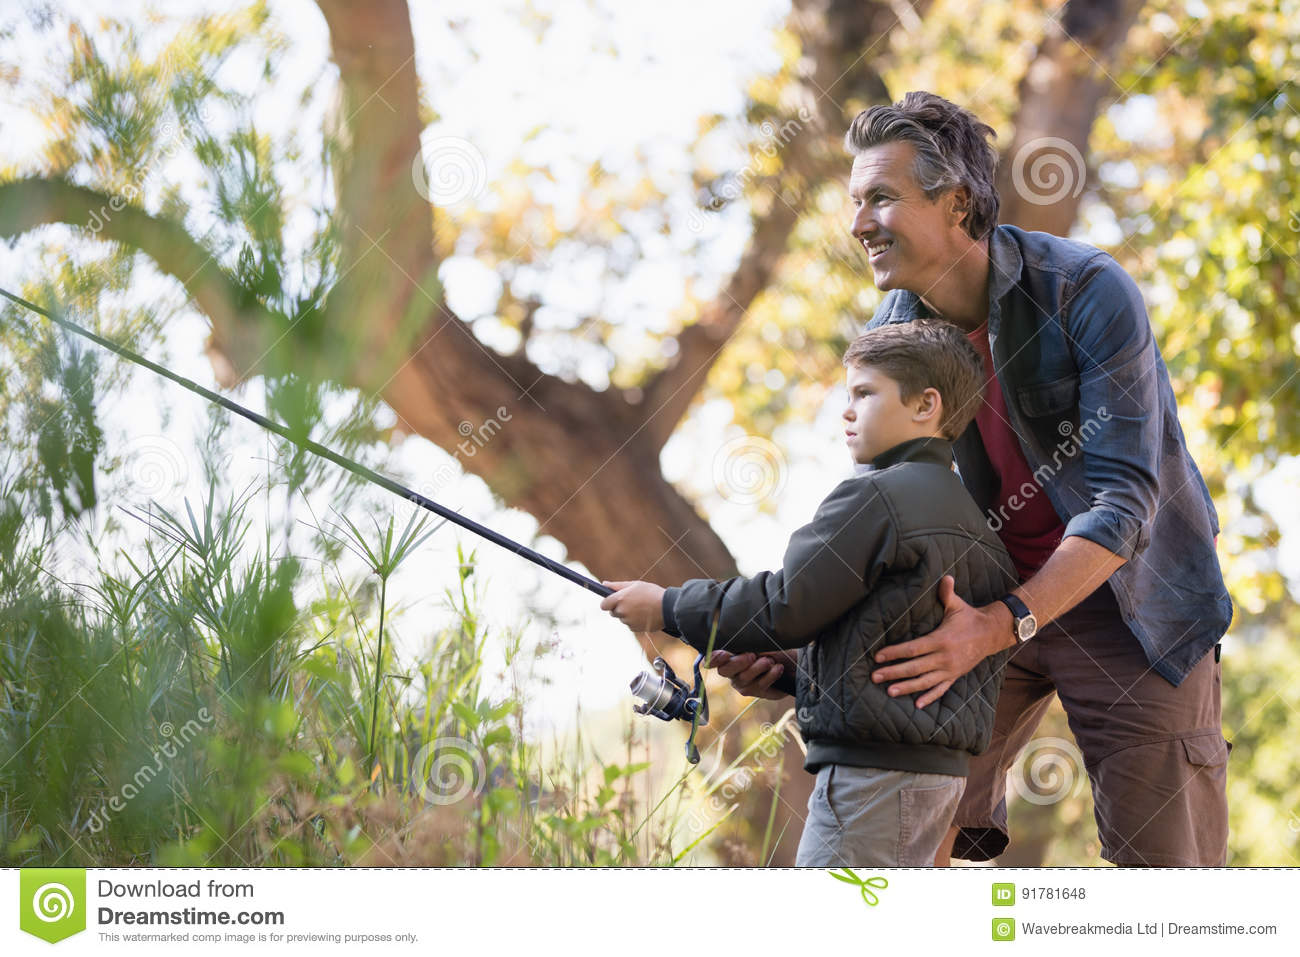 Smiling father assisting son while fishing in forest